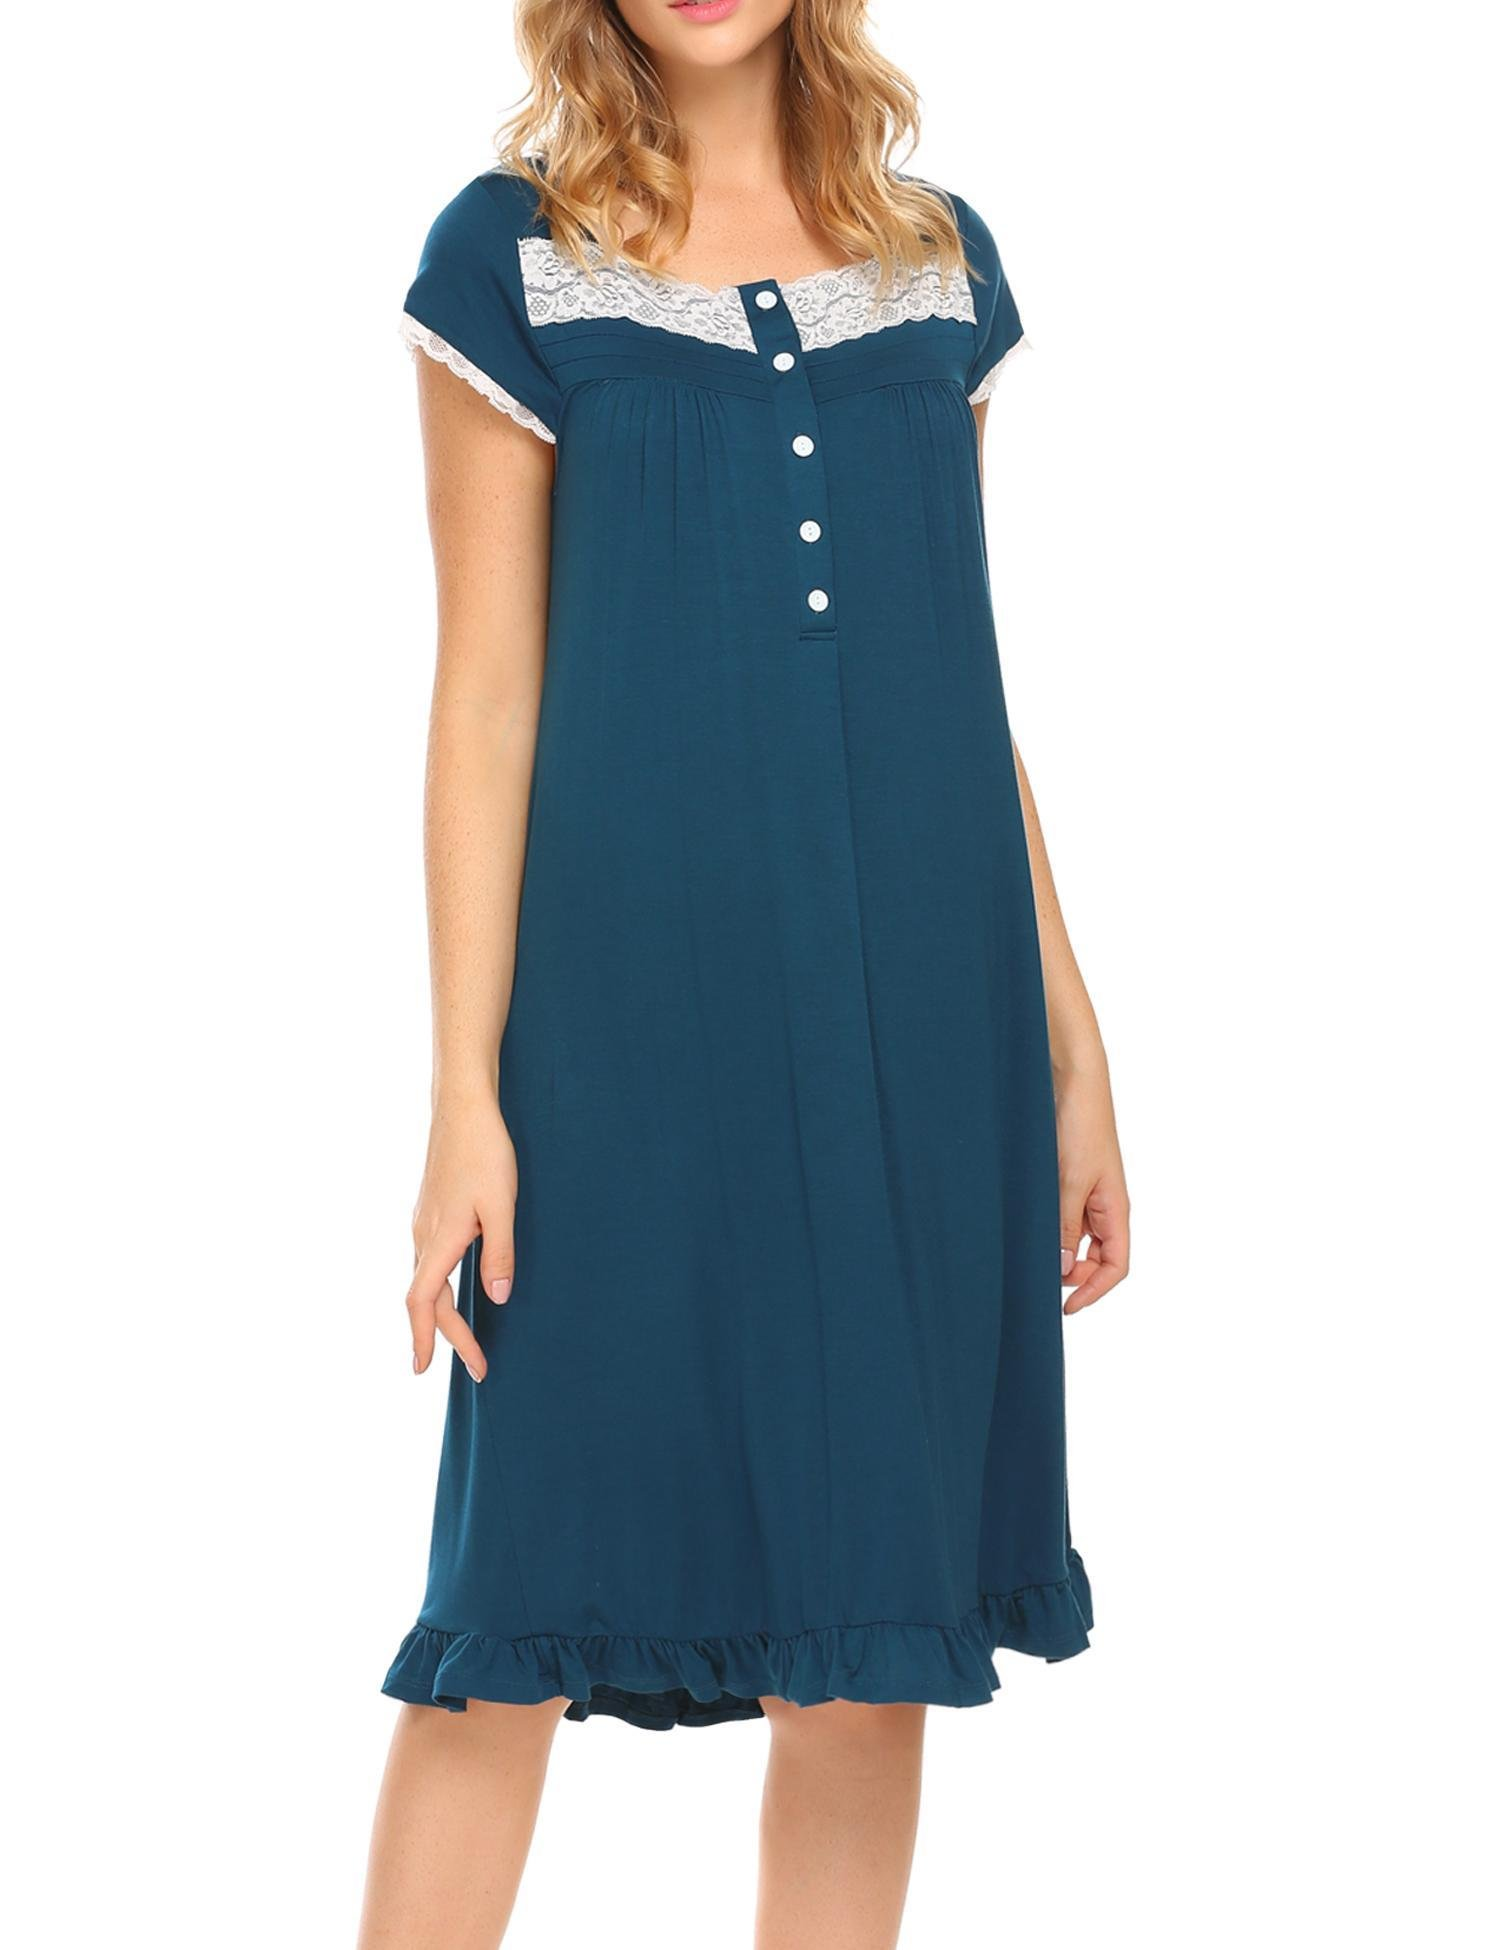 Women's Night Gowns Short Sleeve Button-Down Sleepshirt House Dress,Blue,Large by DonKap (Image #3)